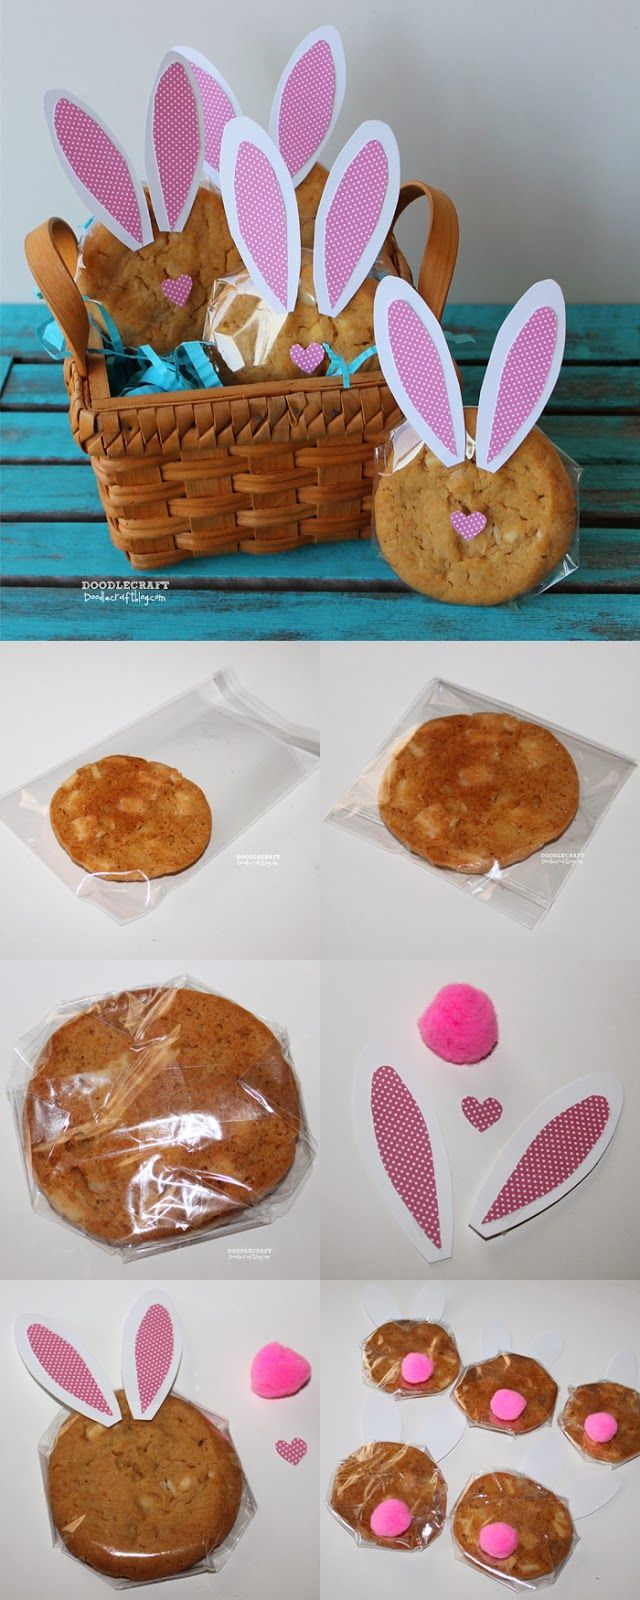 Best 25 easter gifts for kids ideas on pinterest easter baskets cookies bunny ear cutouts a basket cellophane and a fuzzy tail and youre all set for easter thanks doodlecraft negle Choice Image